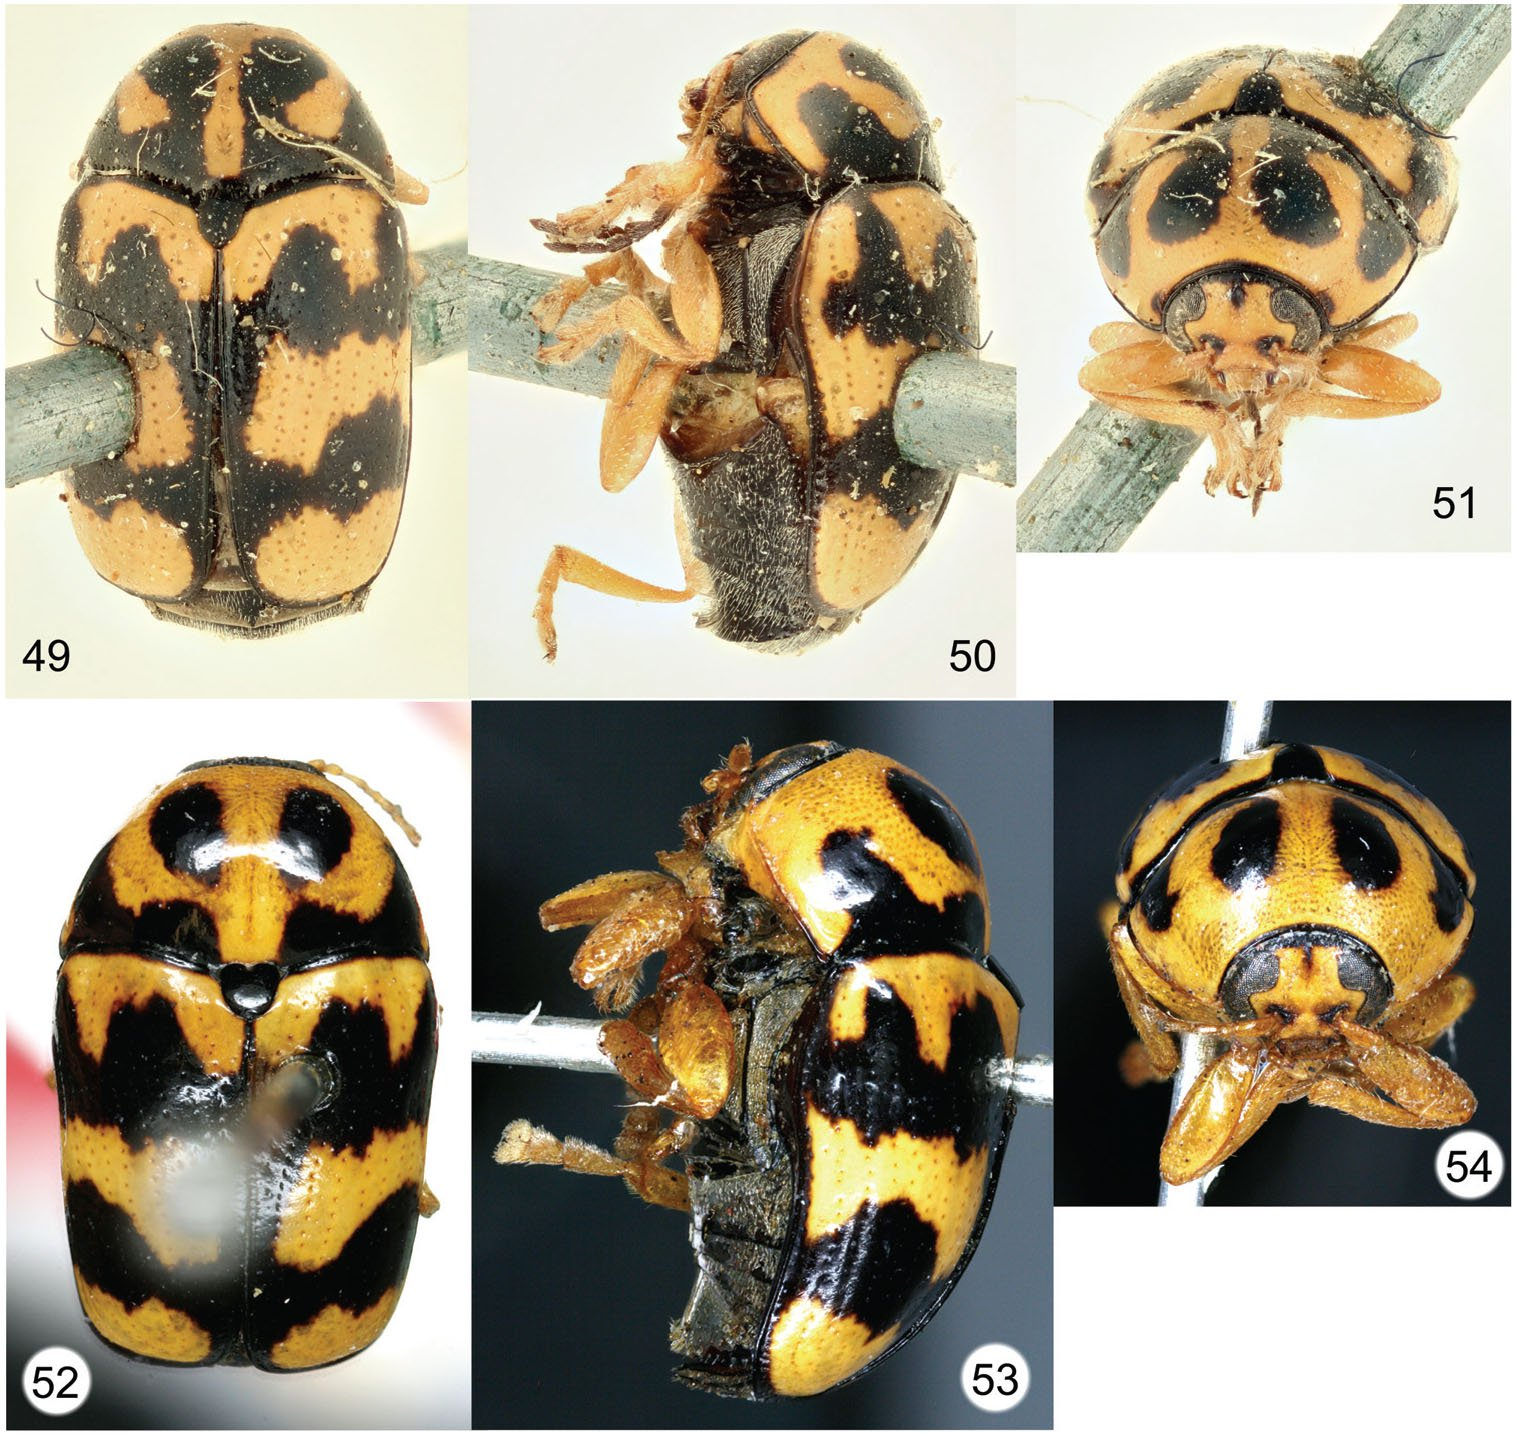 Cryptocephalus Species Described from South Africa by Johan